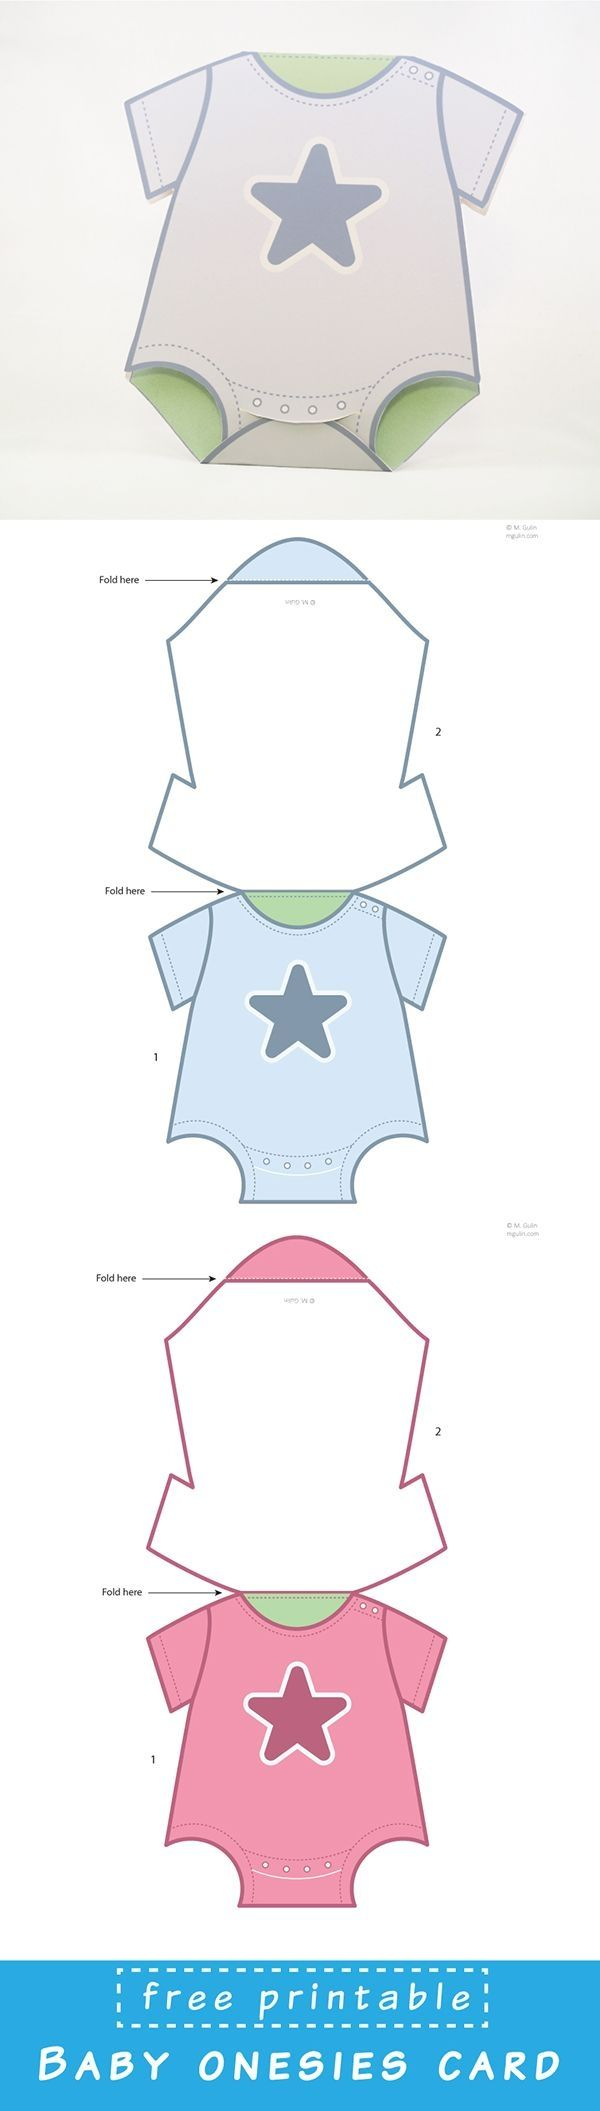 Free Printable Baby Onesies Card template. Just dowload and assemble. by britta.hansen.900